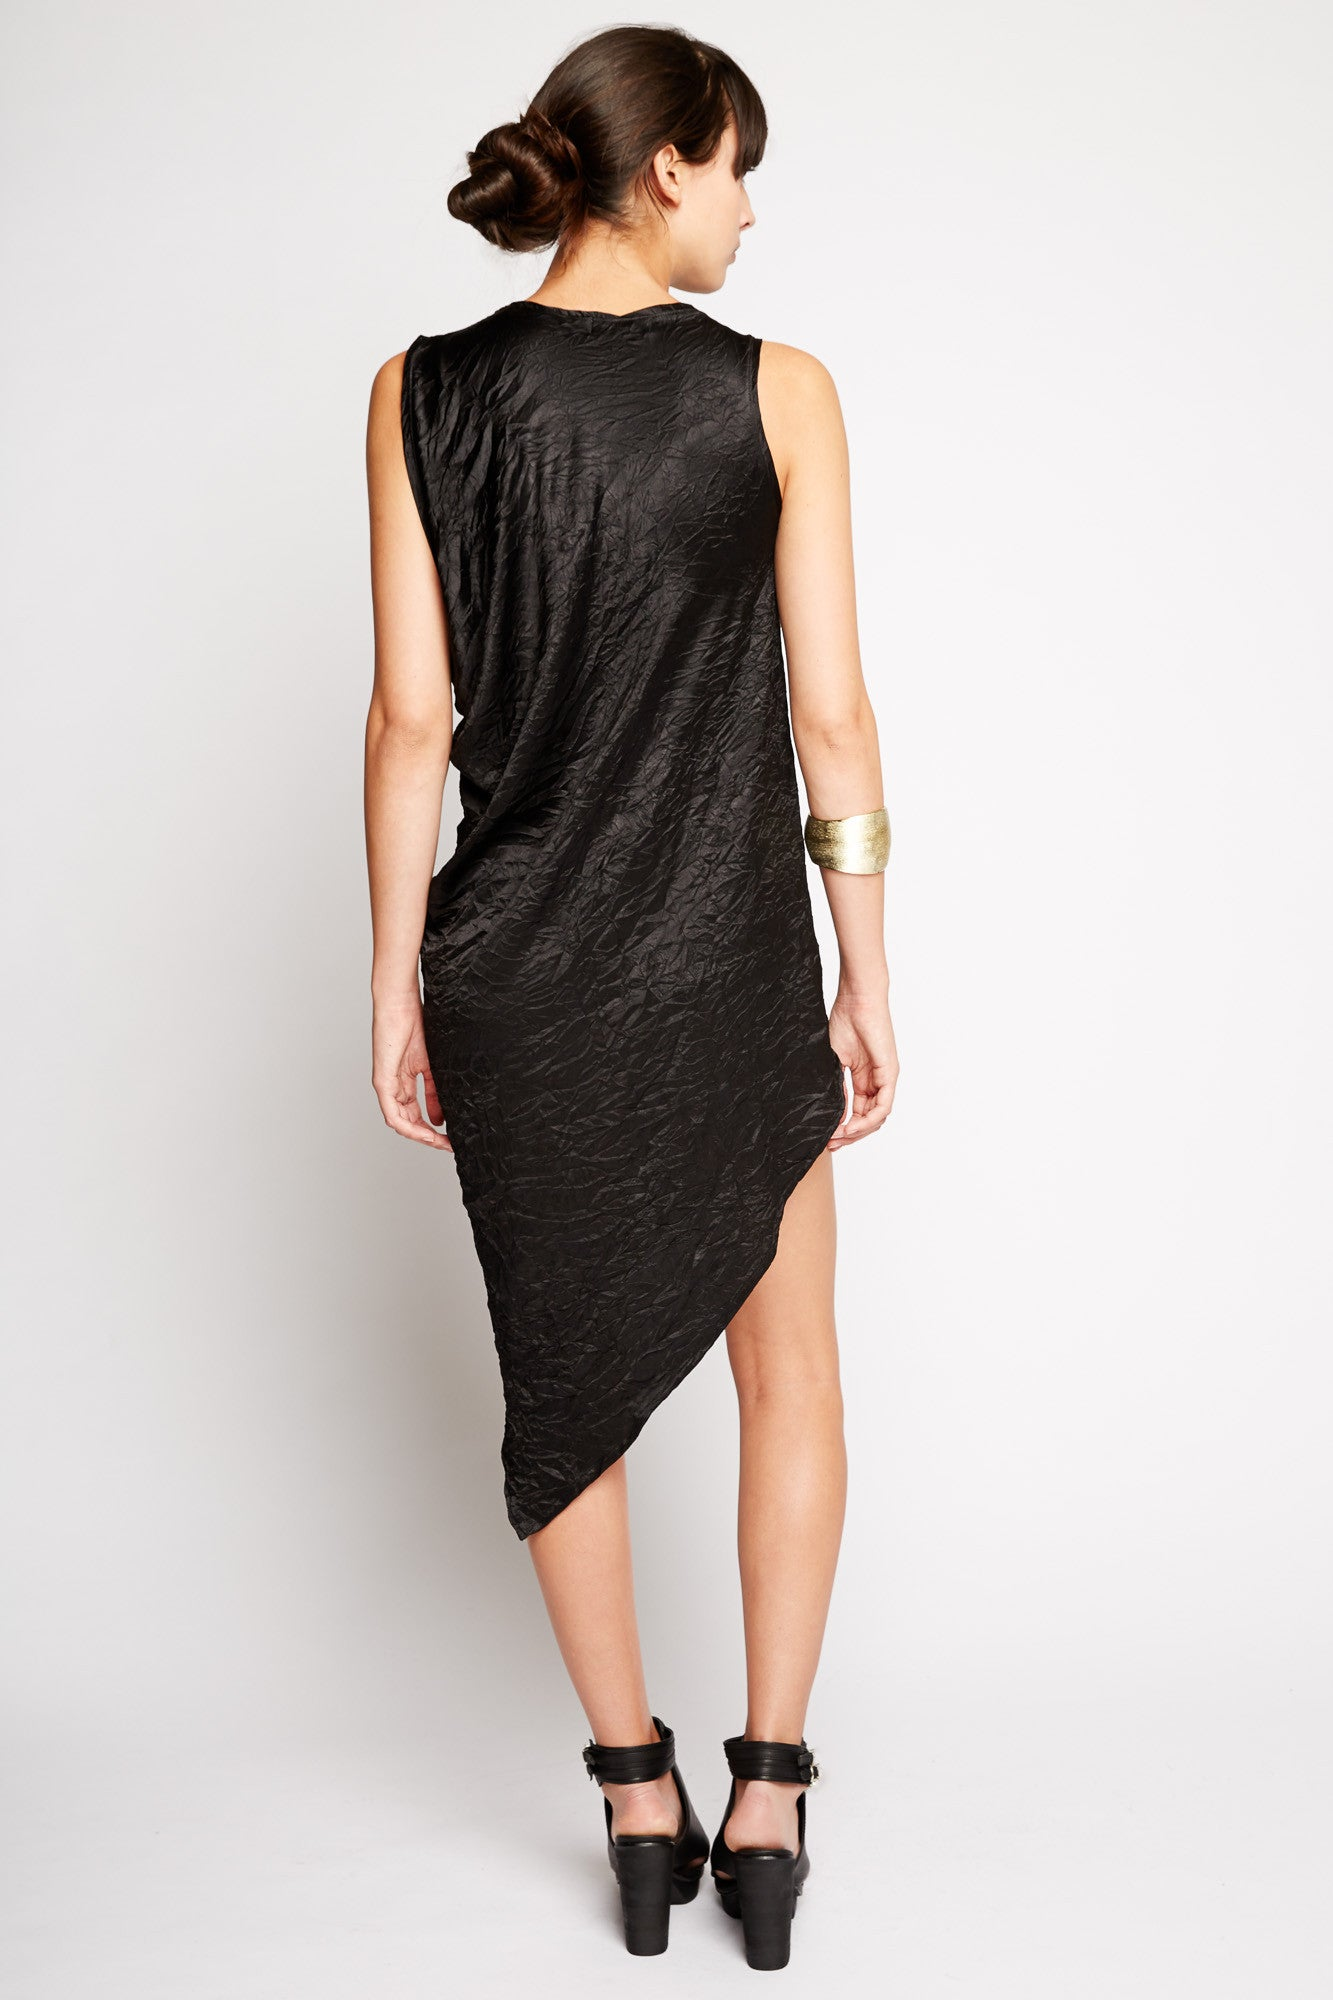 Hypnos Crinkled Silk Dress by Ovate